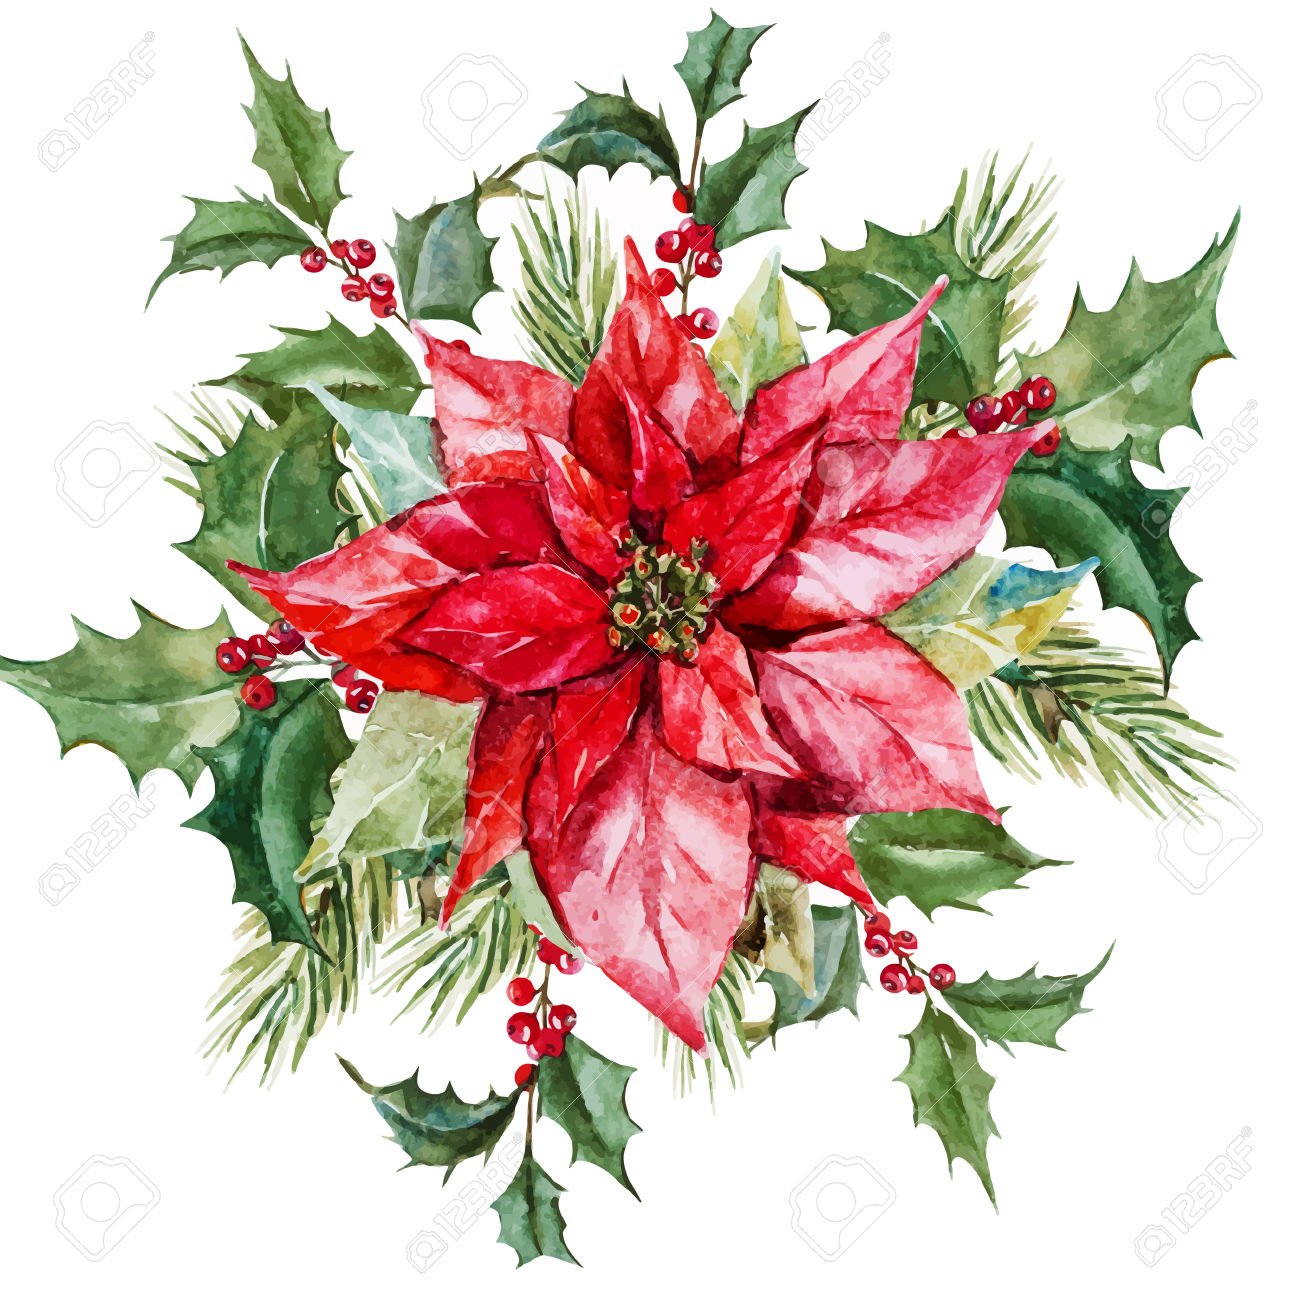 Christmas flowers pictures free image stock Christmas Flowers Images & Stock Pictures. Royalty Free Christmas ... image stock